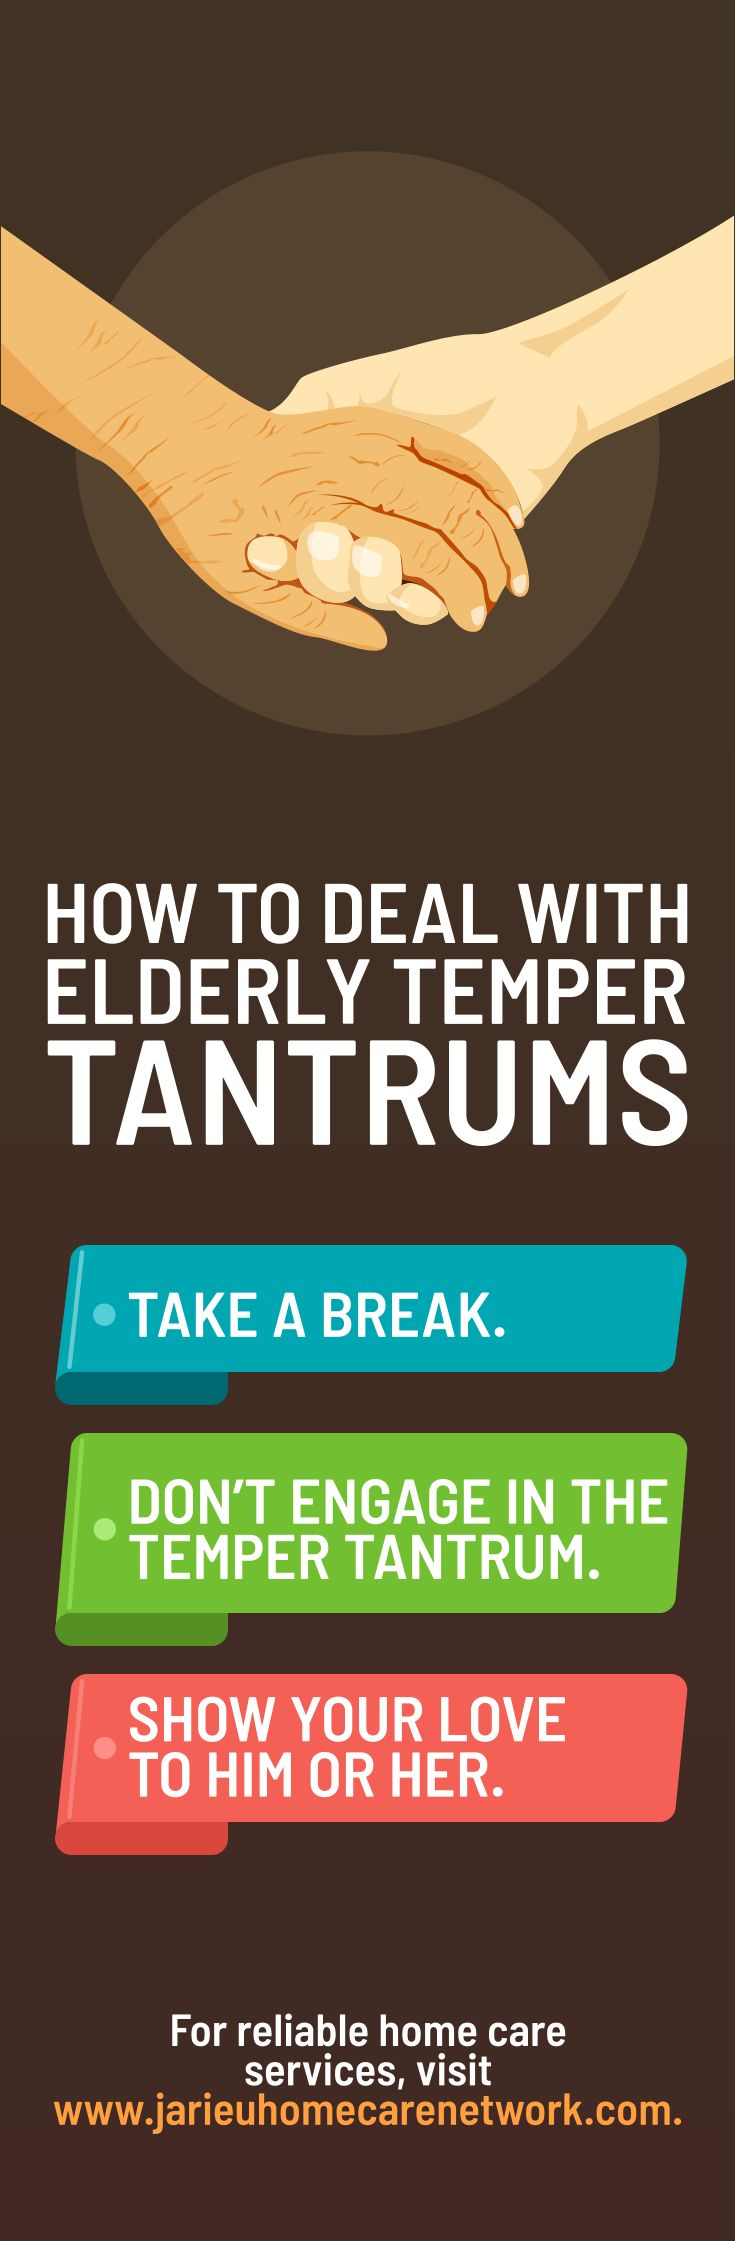 How To Deal With Elderly Temper Tantrums Elderly Tantrums Temper Temper Tantrums Tantrums Home Care